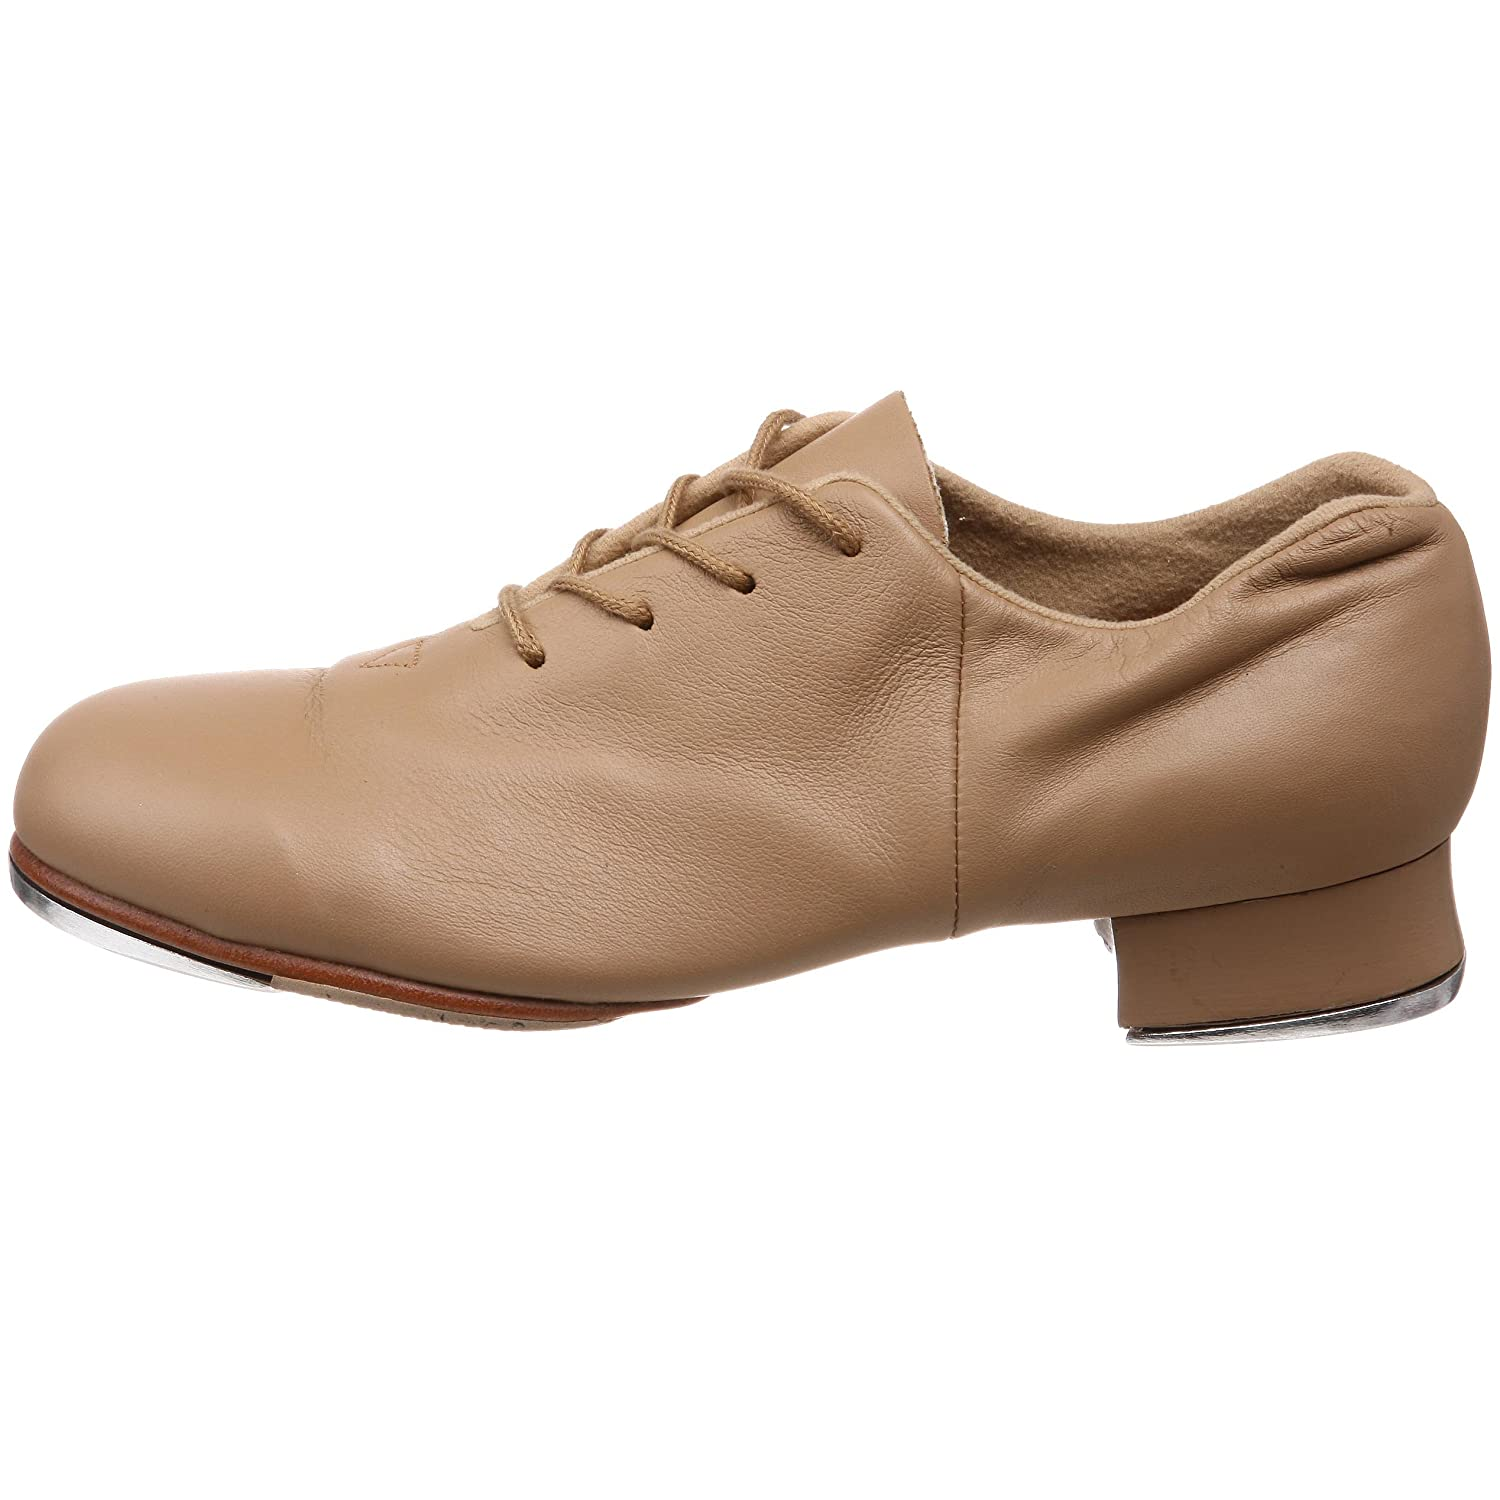 Bloch Dance Women's Tap-Flex Tap Shoe B0041HYZBI 10 M US|Tan